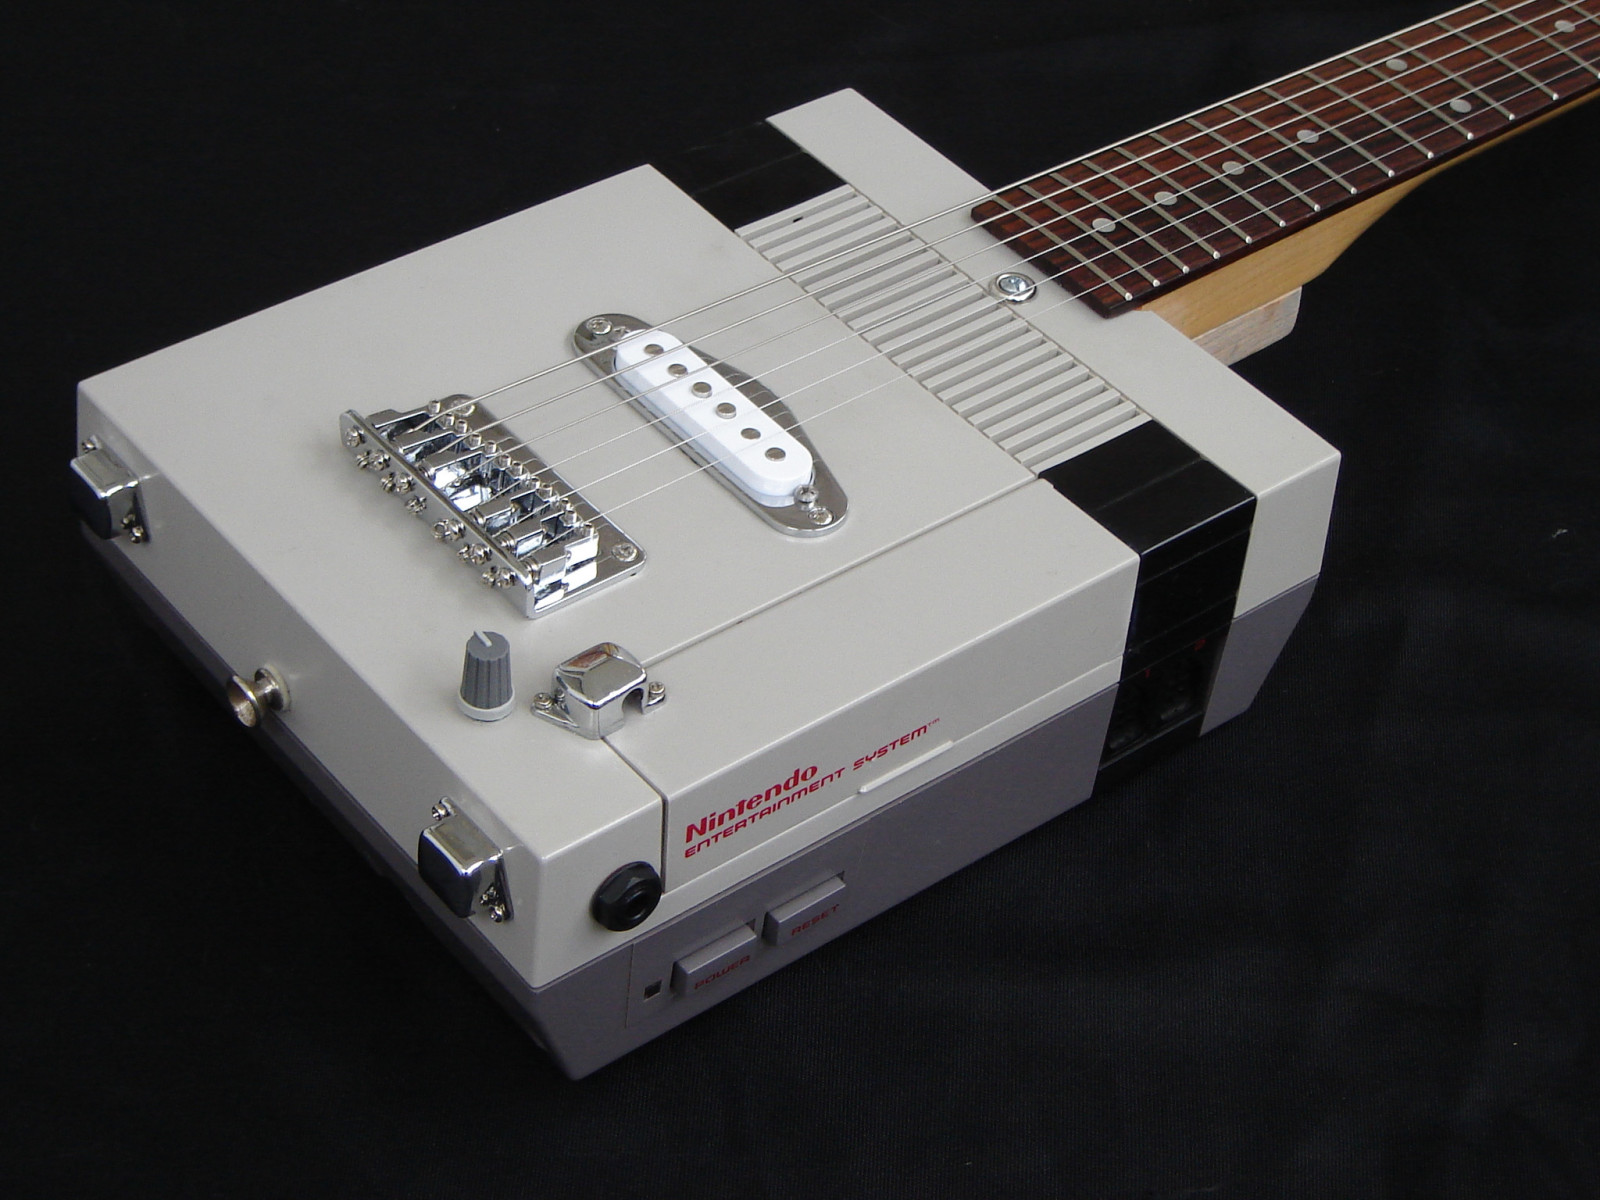 guitar_made_of_old_nintendo_game_console-1600x1200